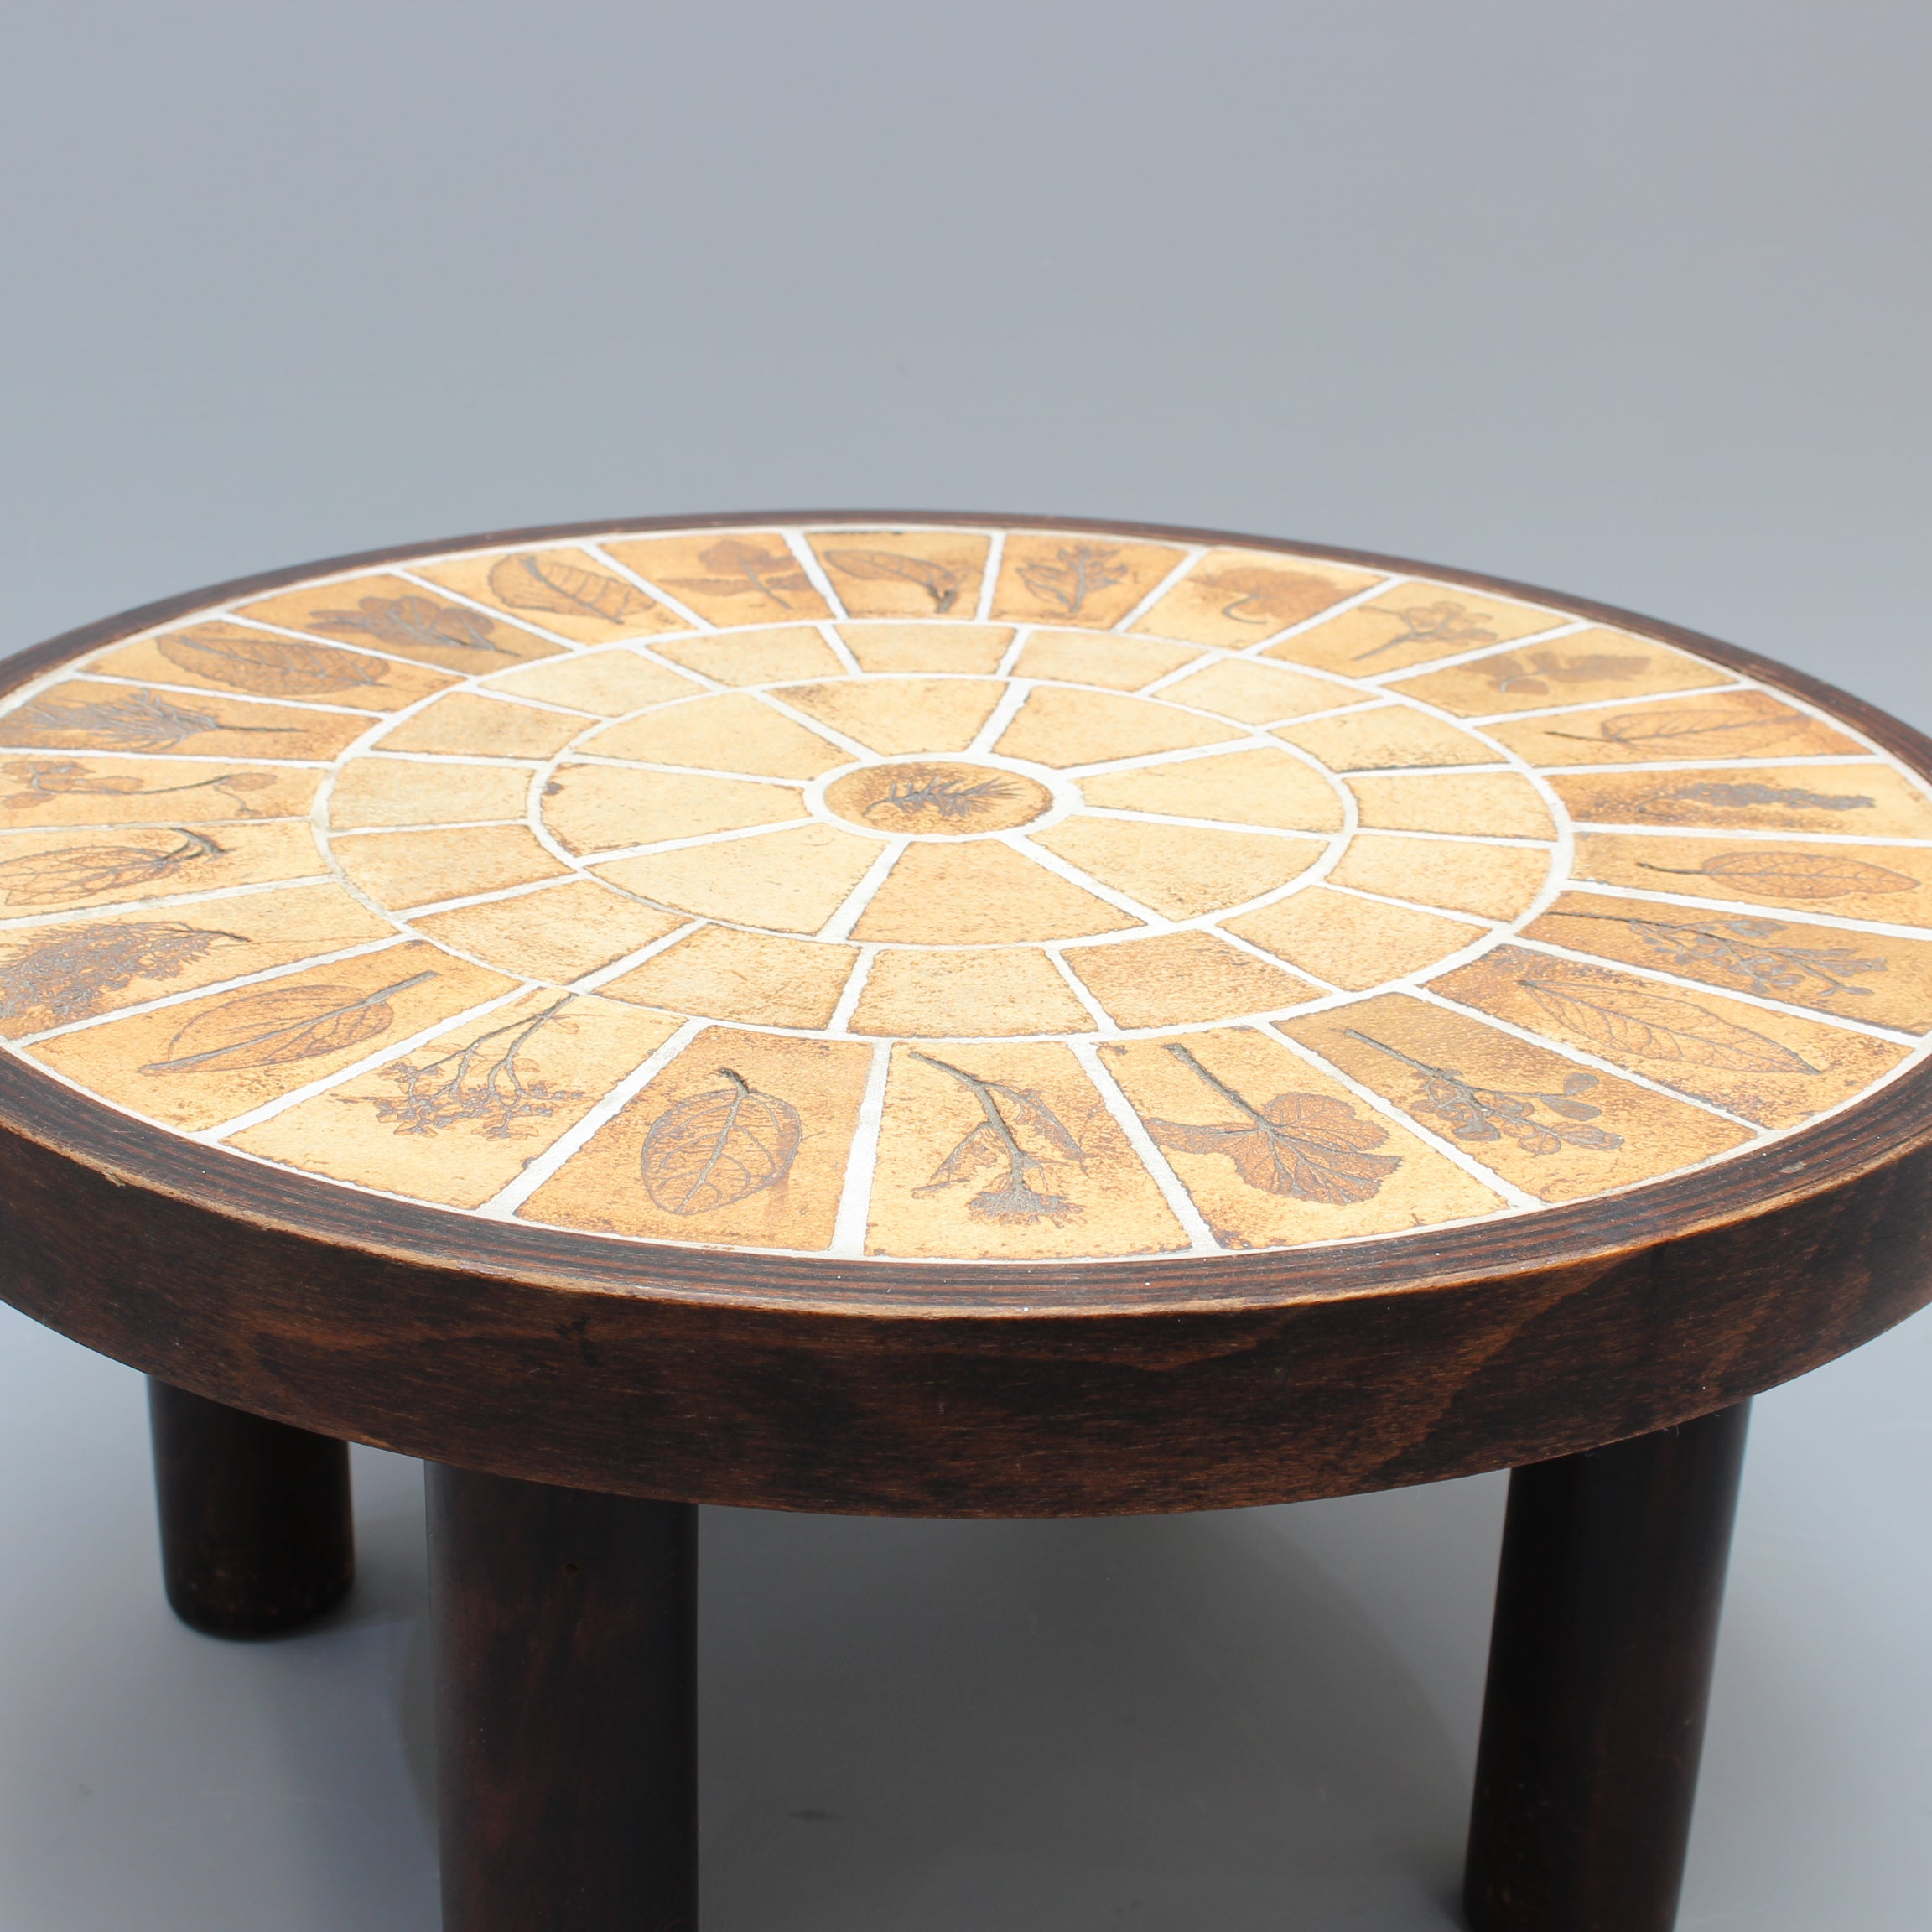 Low Side Table with Decorative Leaf Motif by Roger Capron (circa 1970s)